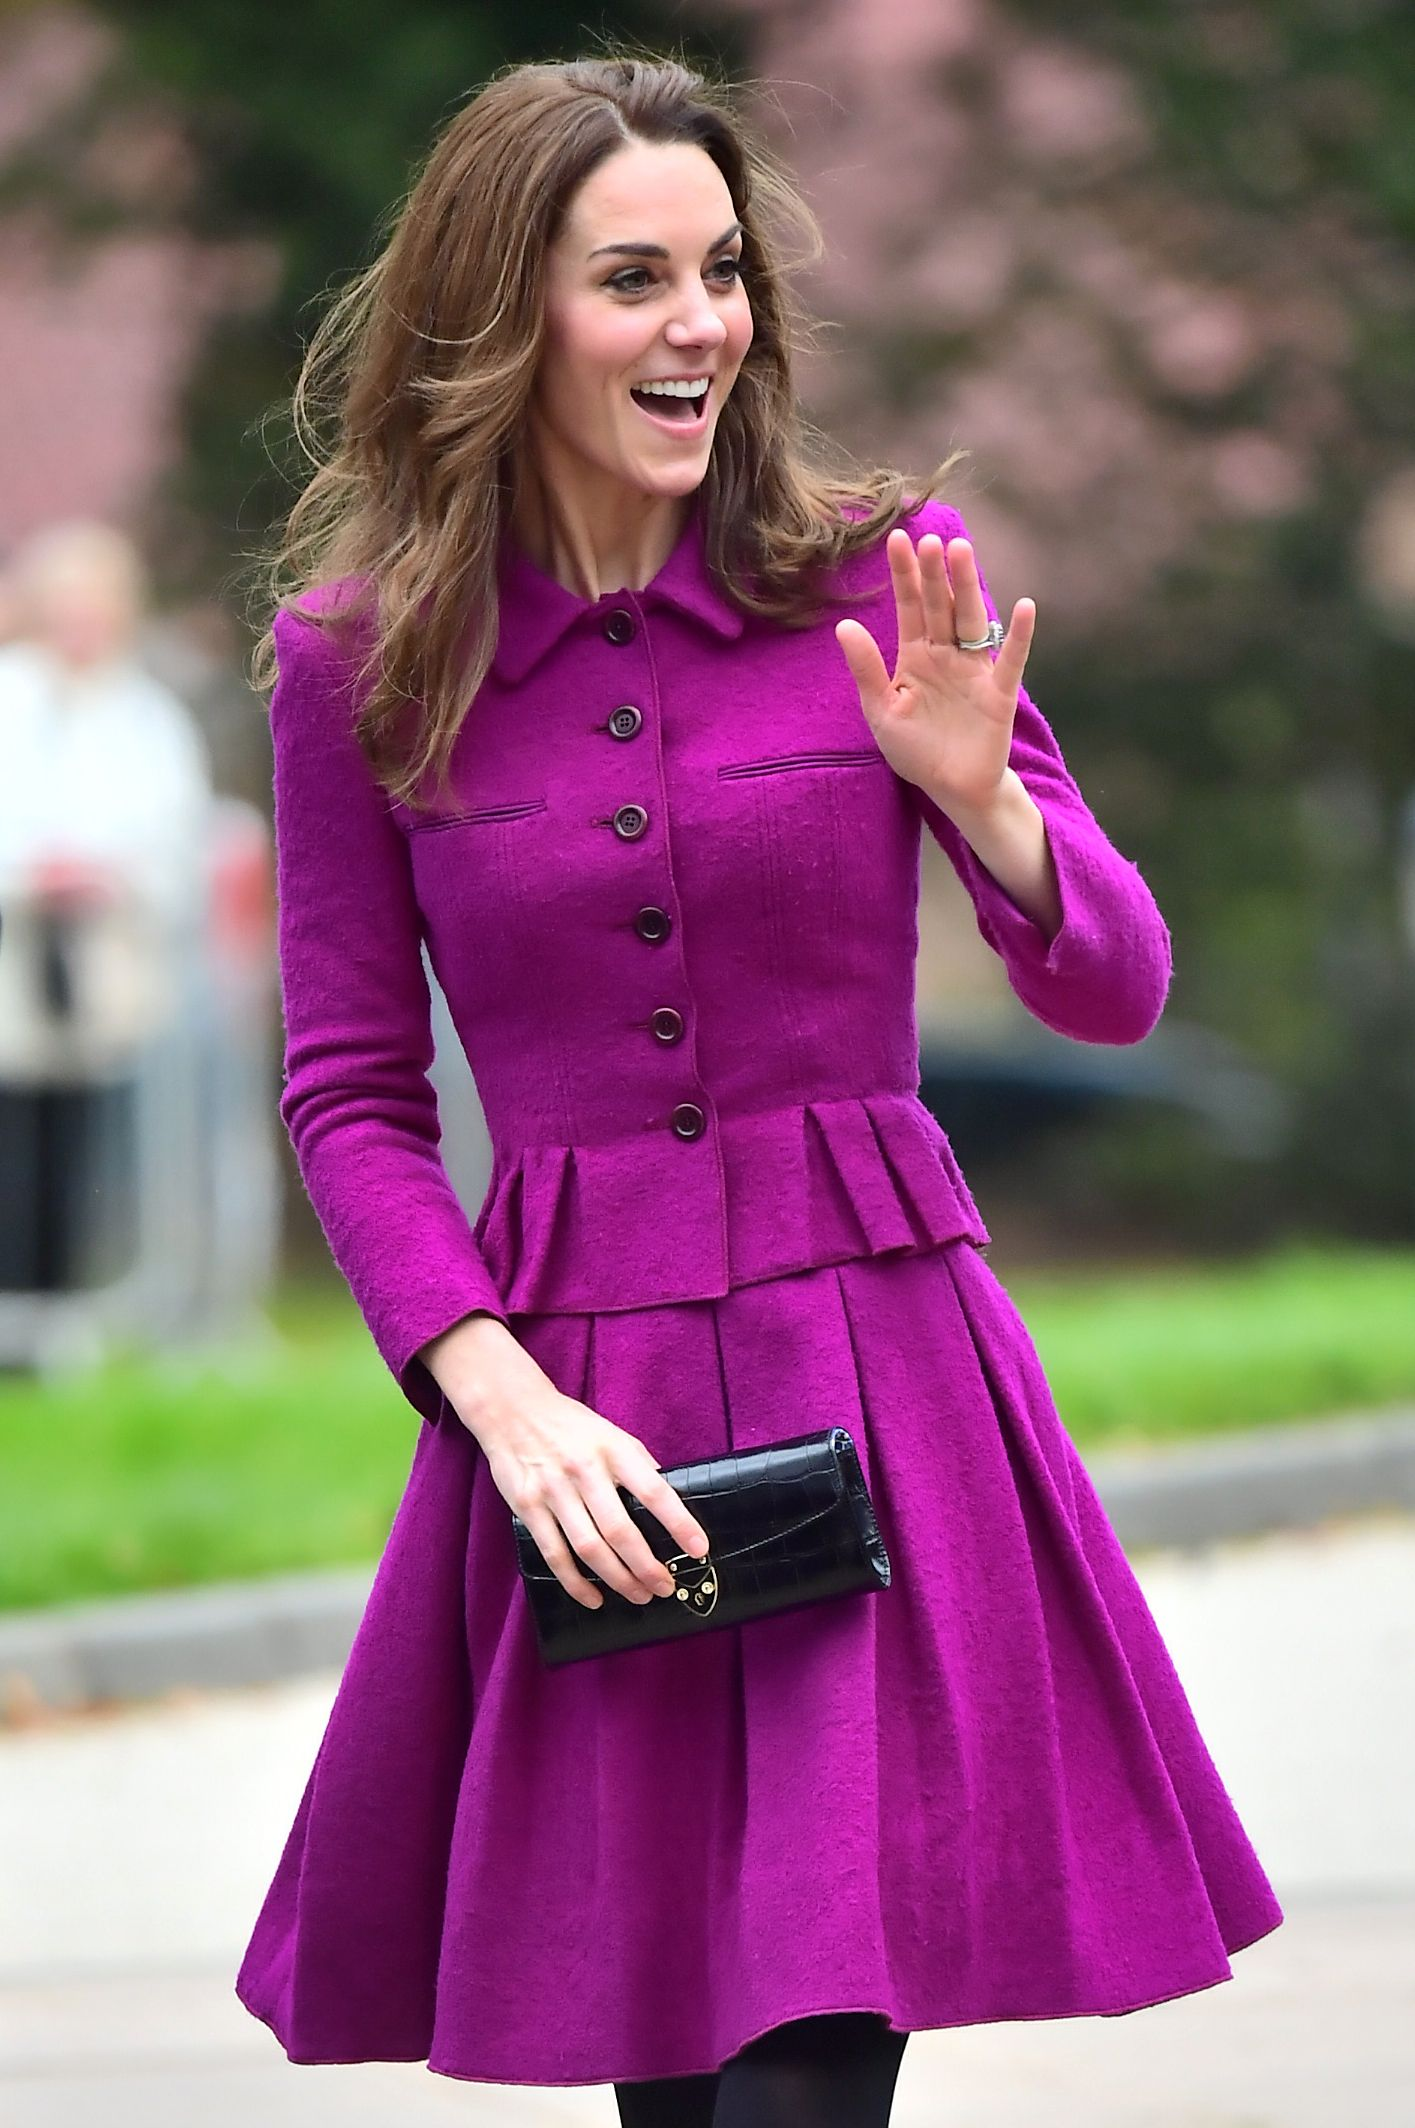 Kate Middleton Rewears Her Pink Oscar de la Renta Skirt Suit to Visit The Nook